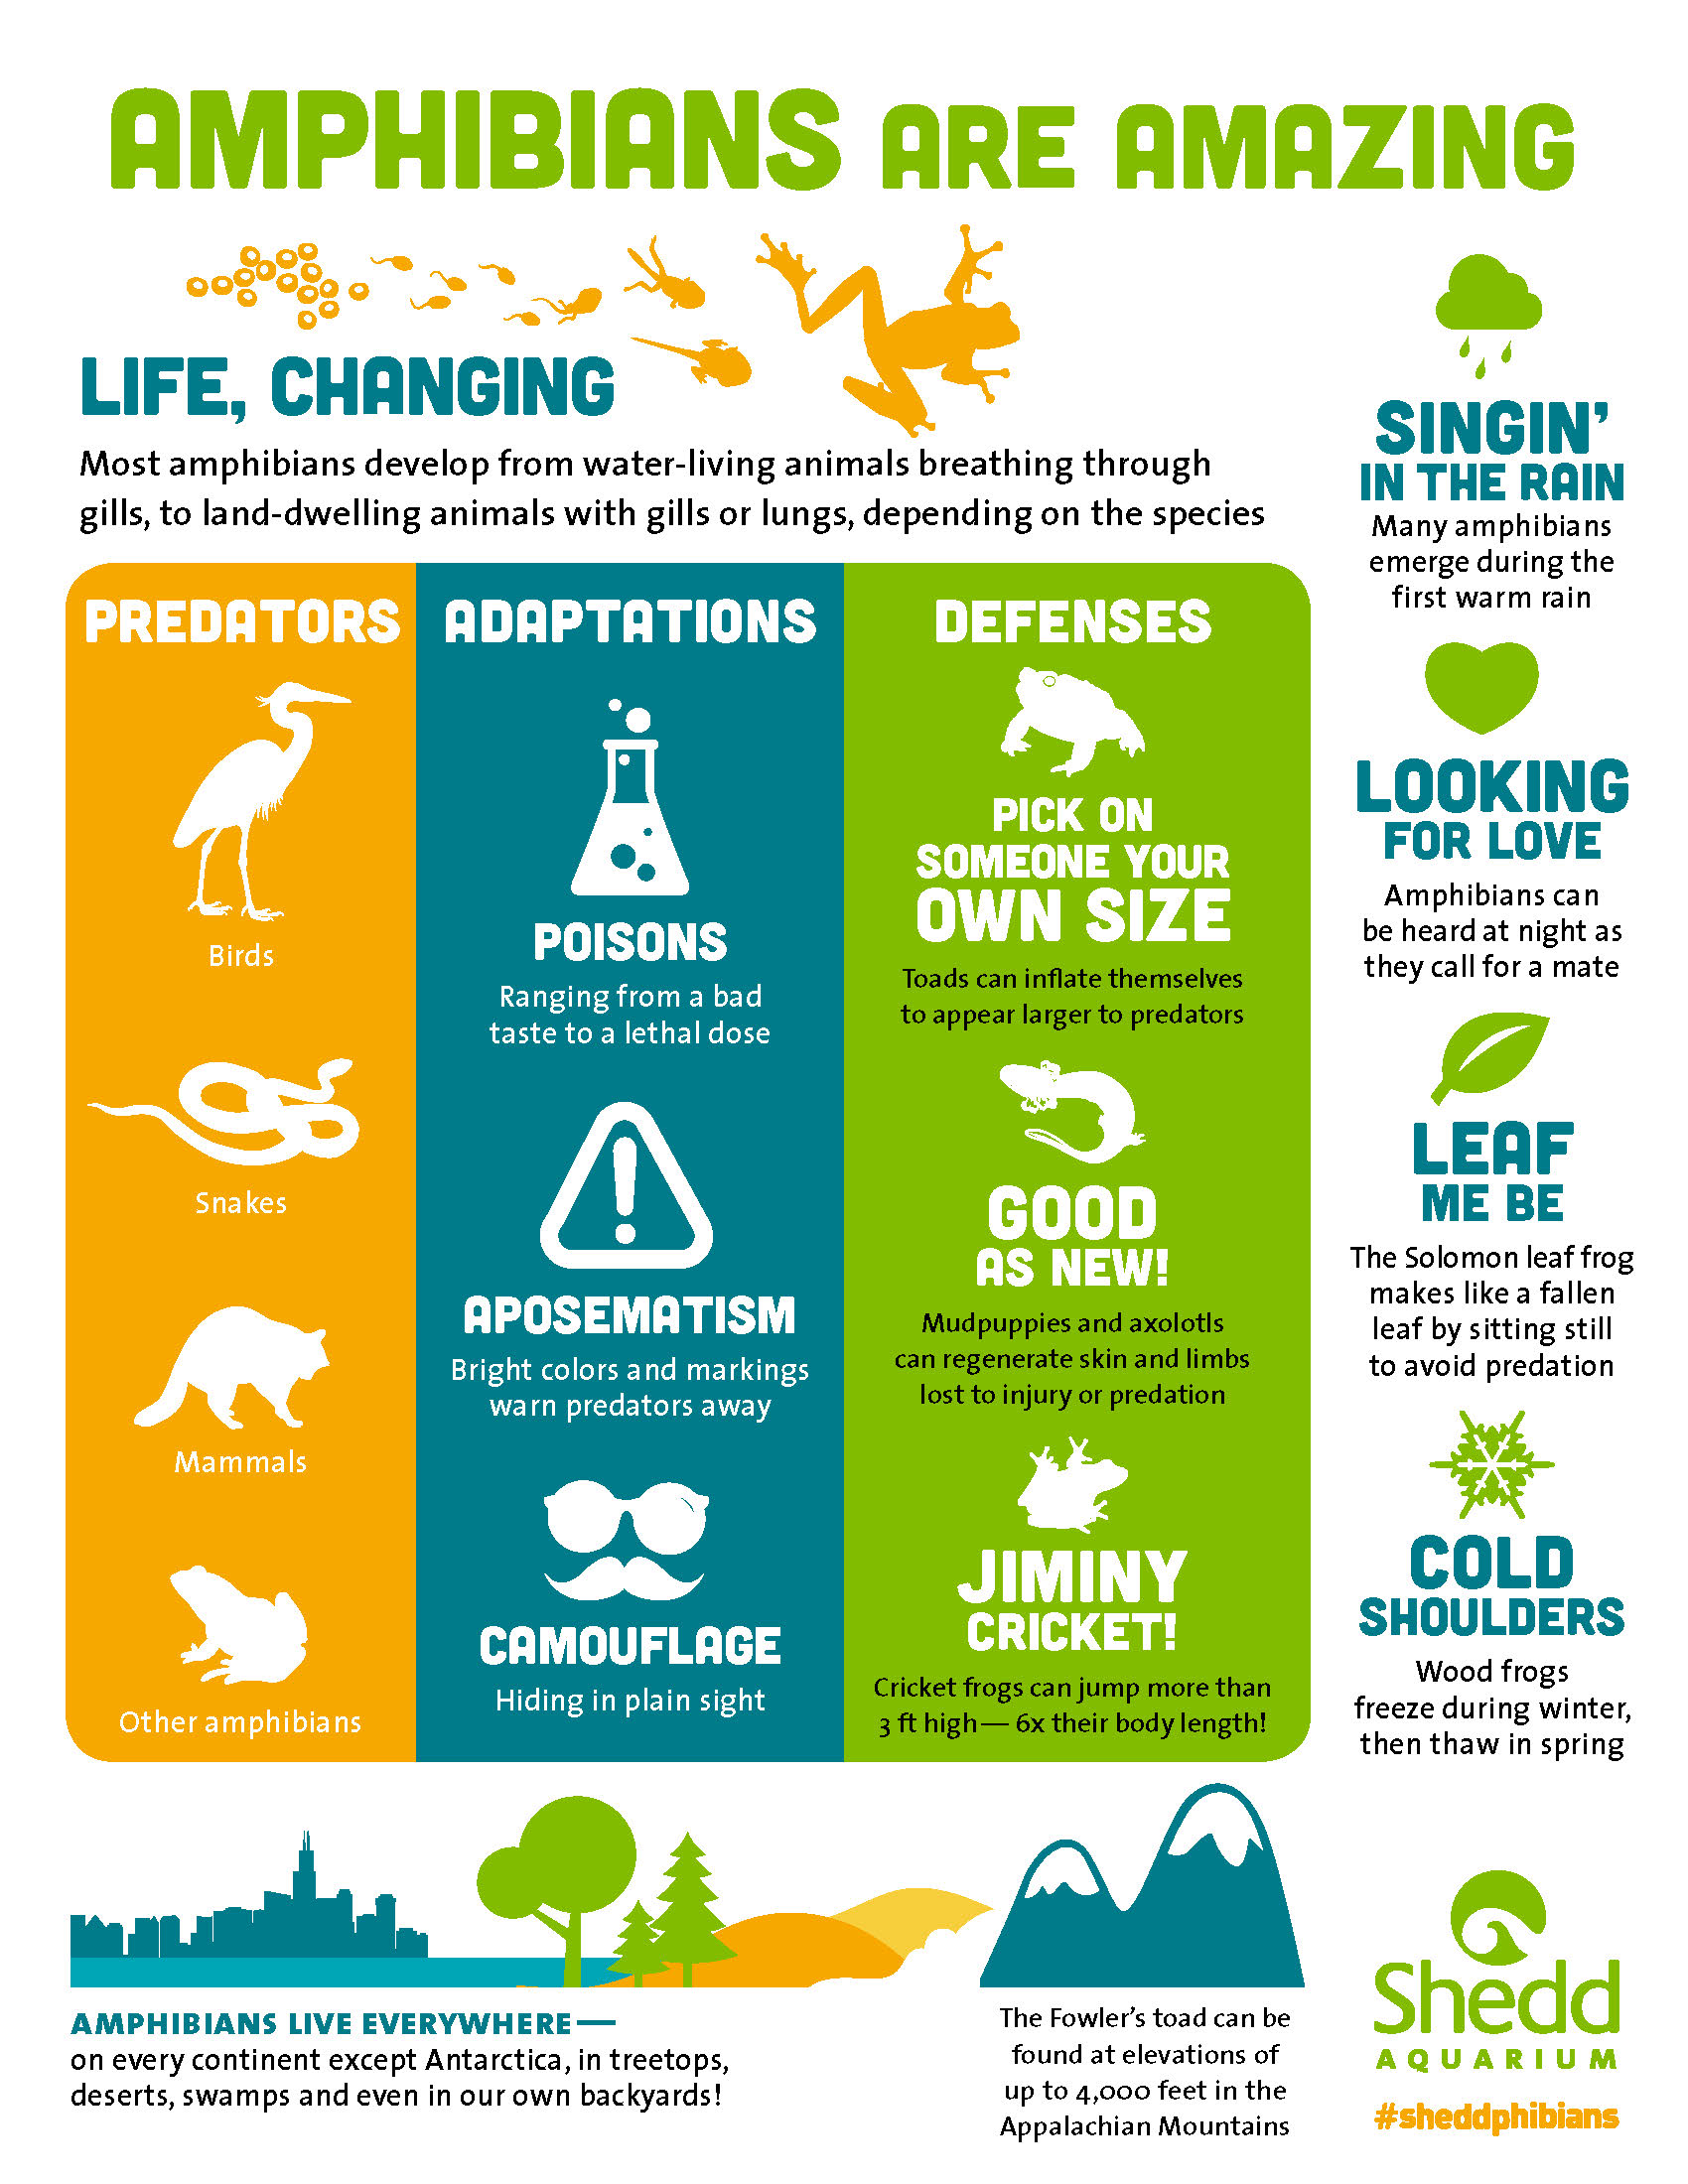 """A colorful infographic with the title 'Ambibians are amazing: Life, changing"""" at the top, and various facts accompanied by playful icons filling up the page."""